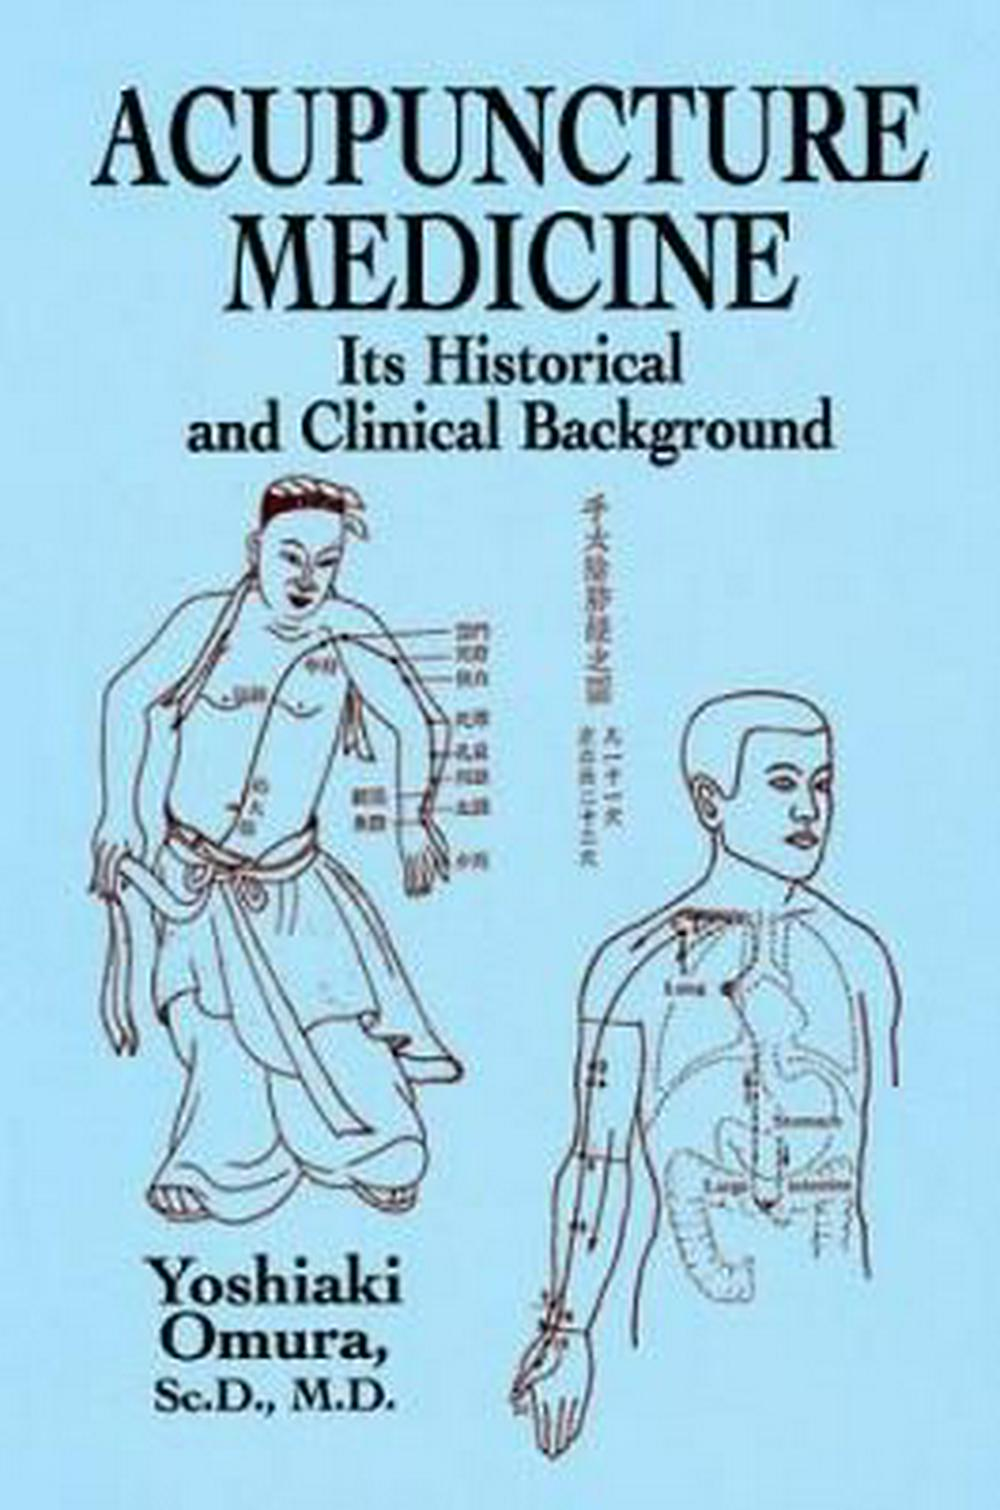 Acupuncture Medicine: Its Historical and Clinical  Background